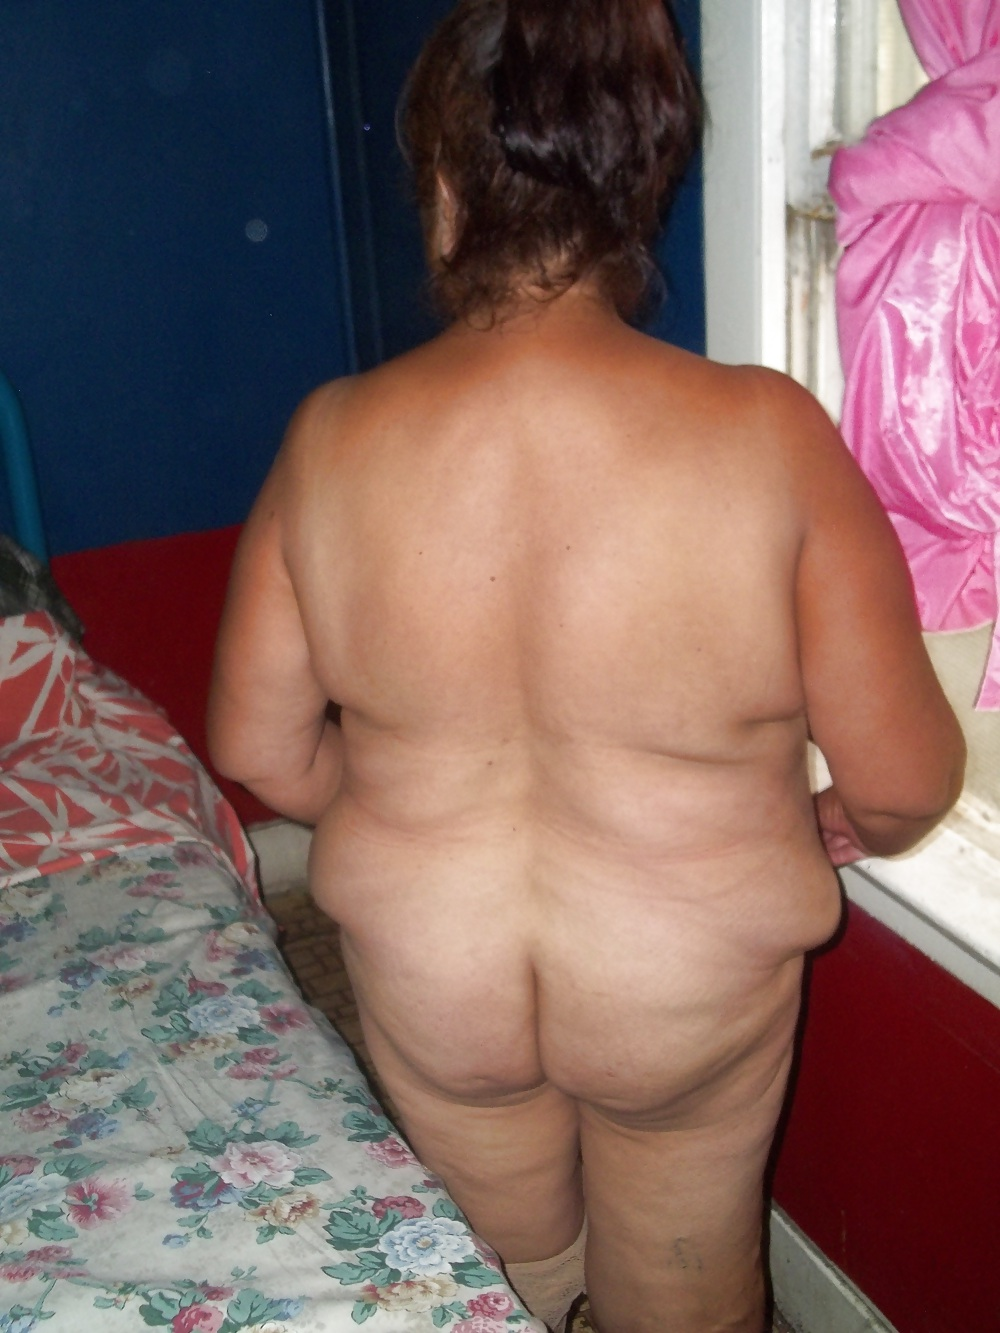 Abuelas Sexys Y Putas Porn see and save as abuelas putas mexicanas porn pict - 4crot